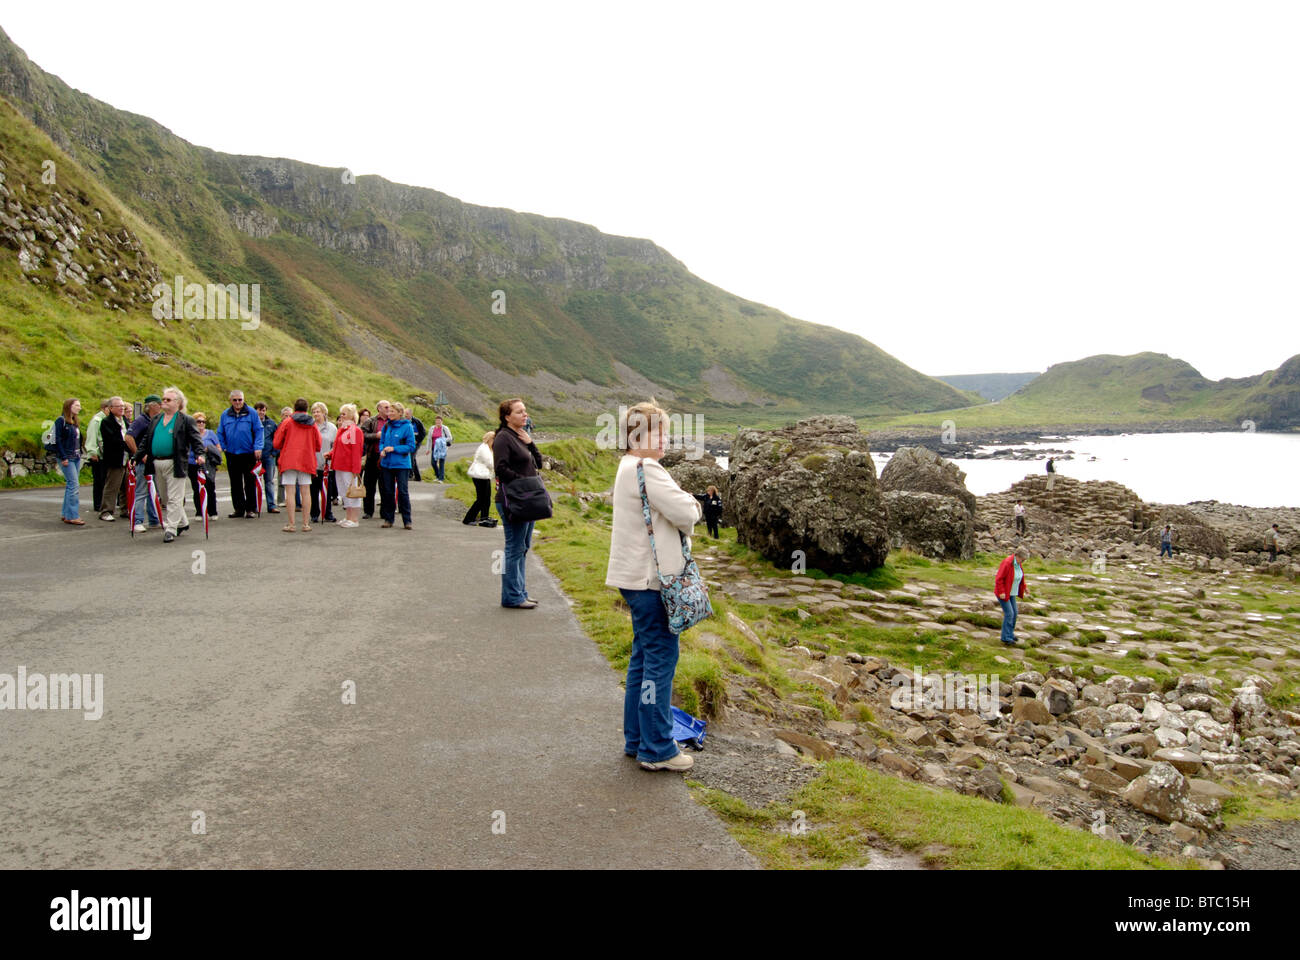 Visitors at the Giants Causeway, County Antrim, Northern Ireland Stock Photo